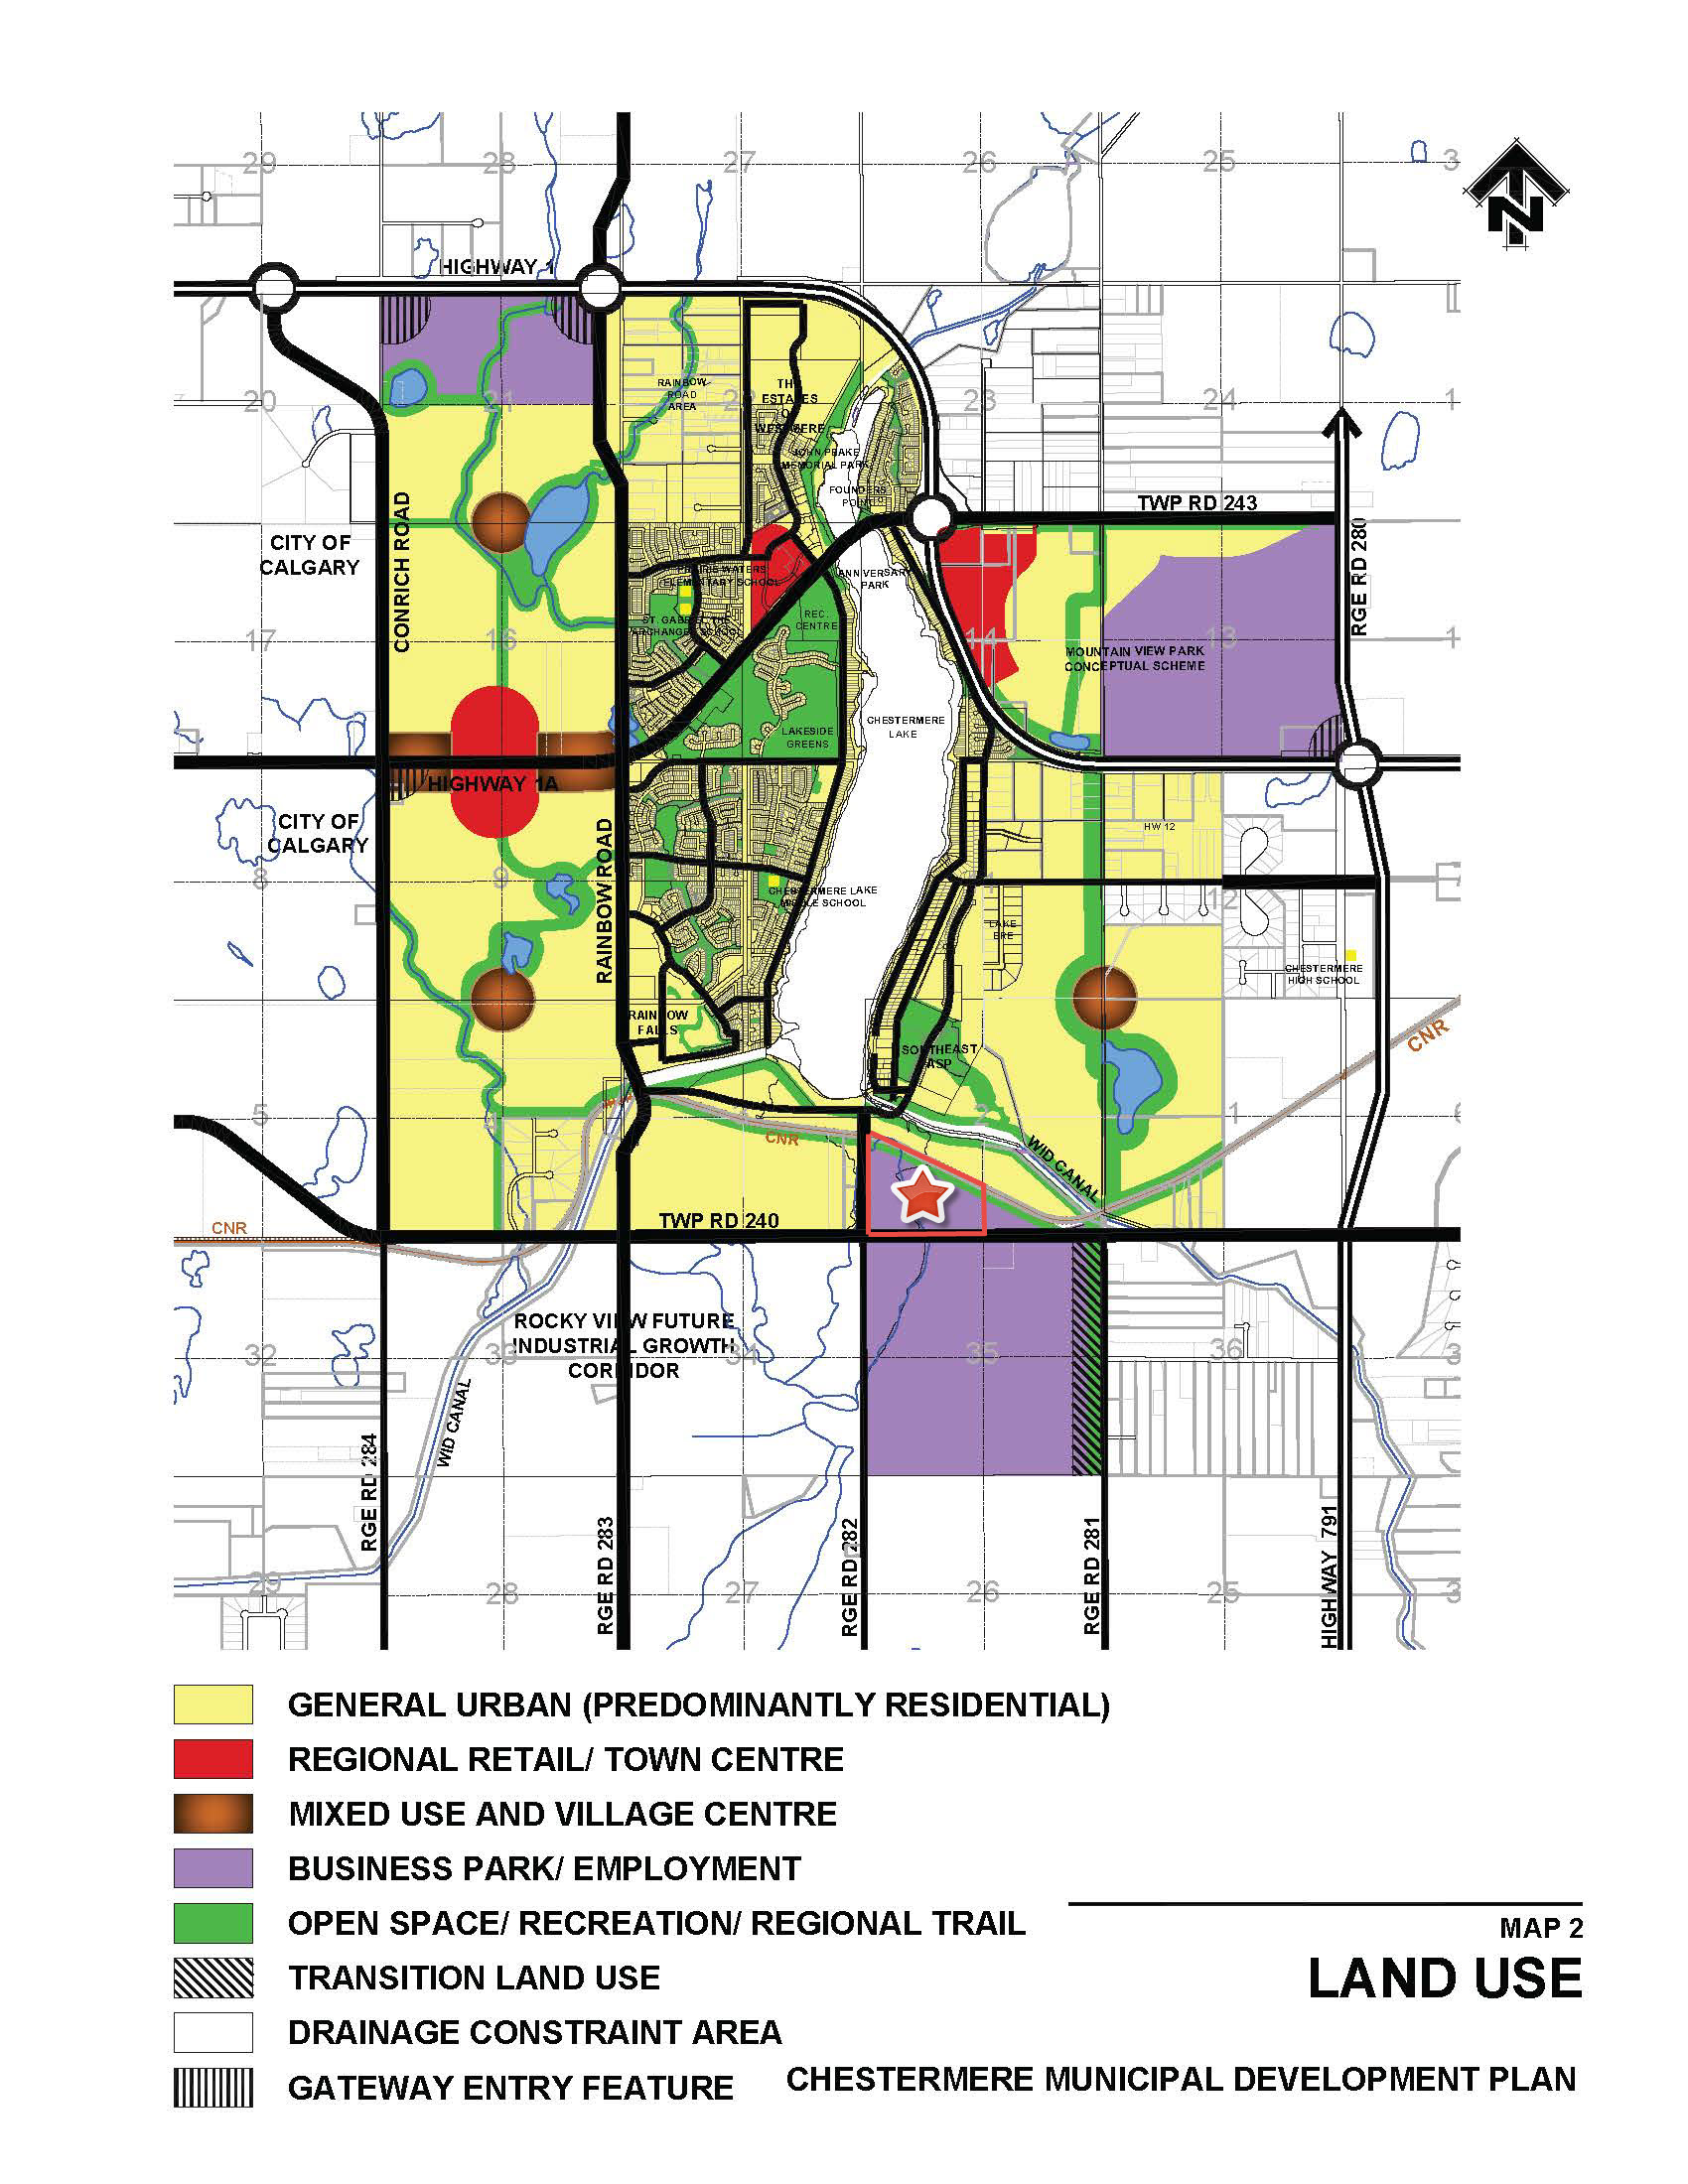 Land Development Map Chestermere.jpg